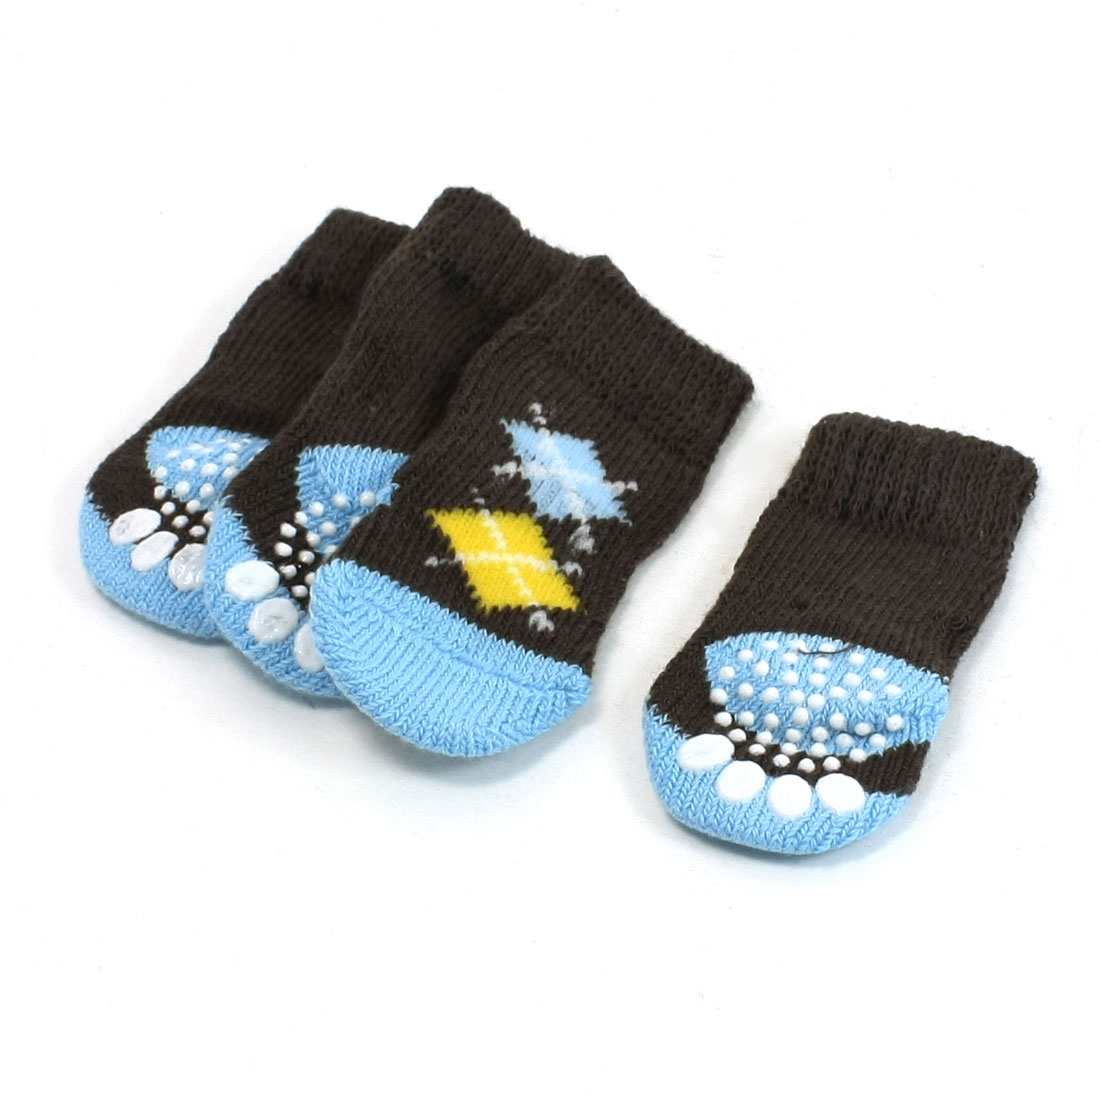 2 Pairs Paw Print Elastic Knitted Pet Dog Yorkie Socks Coffee Color Size M